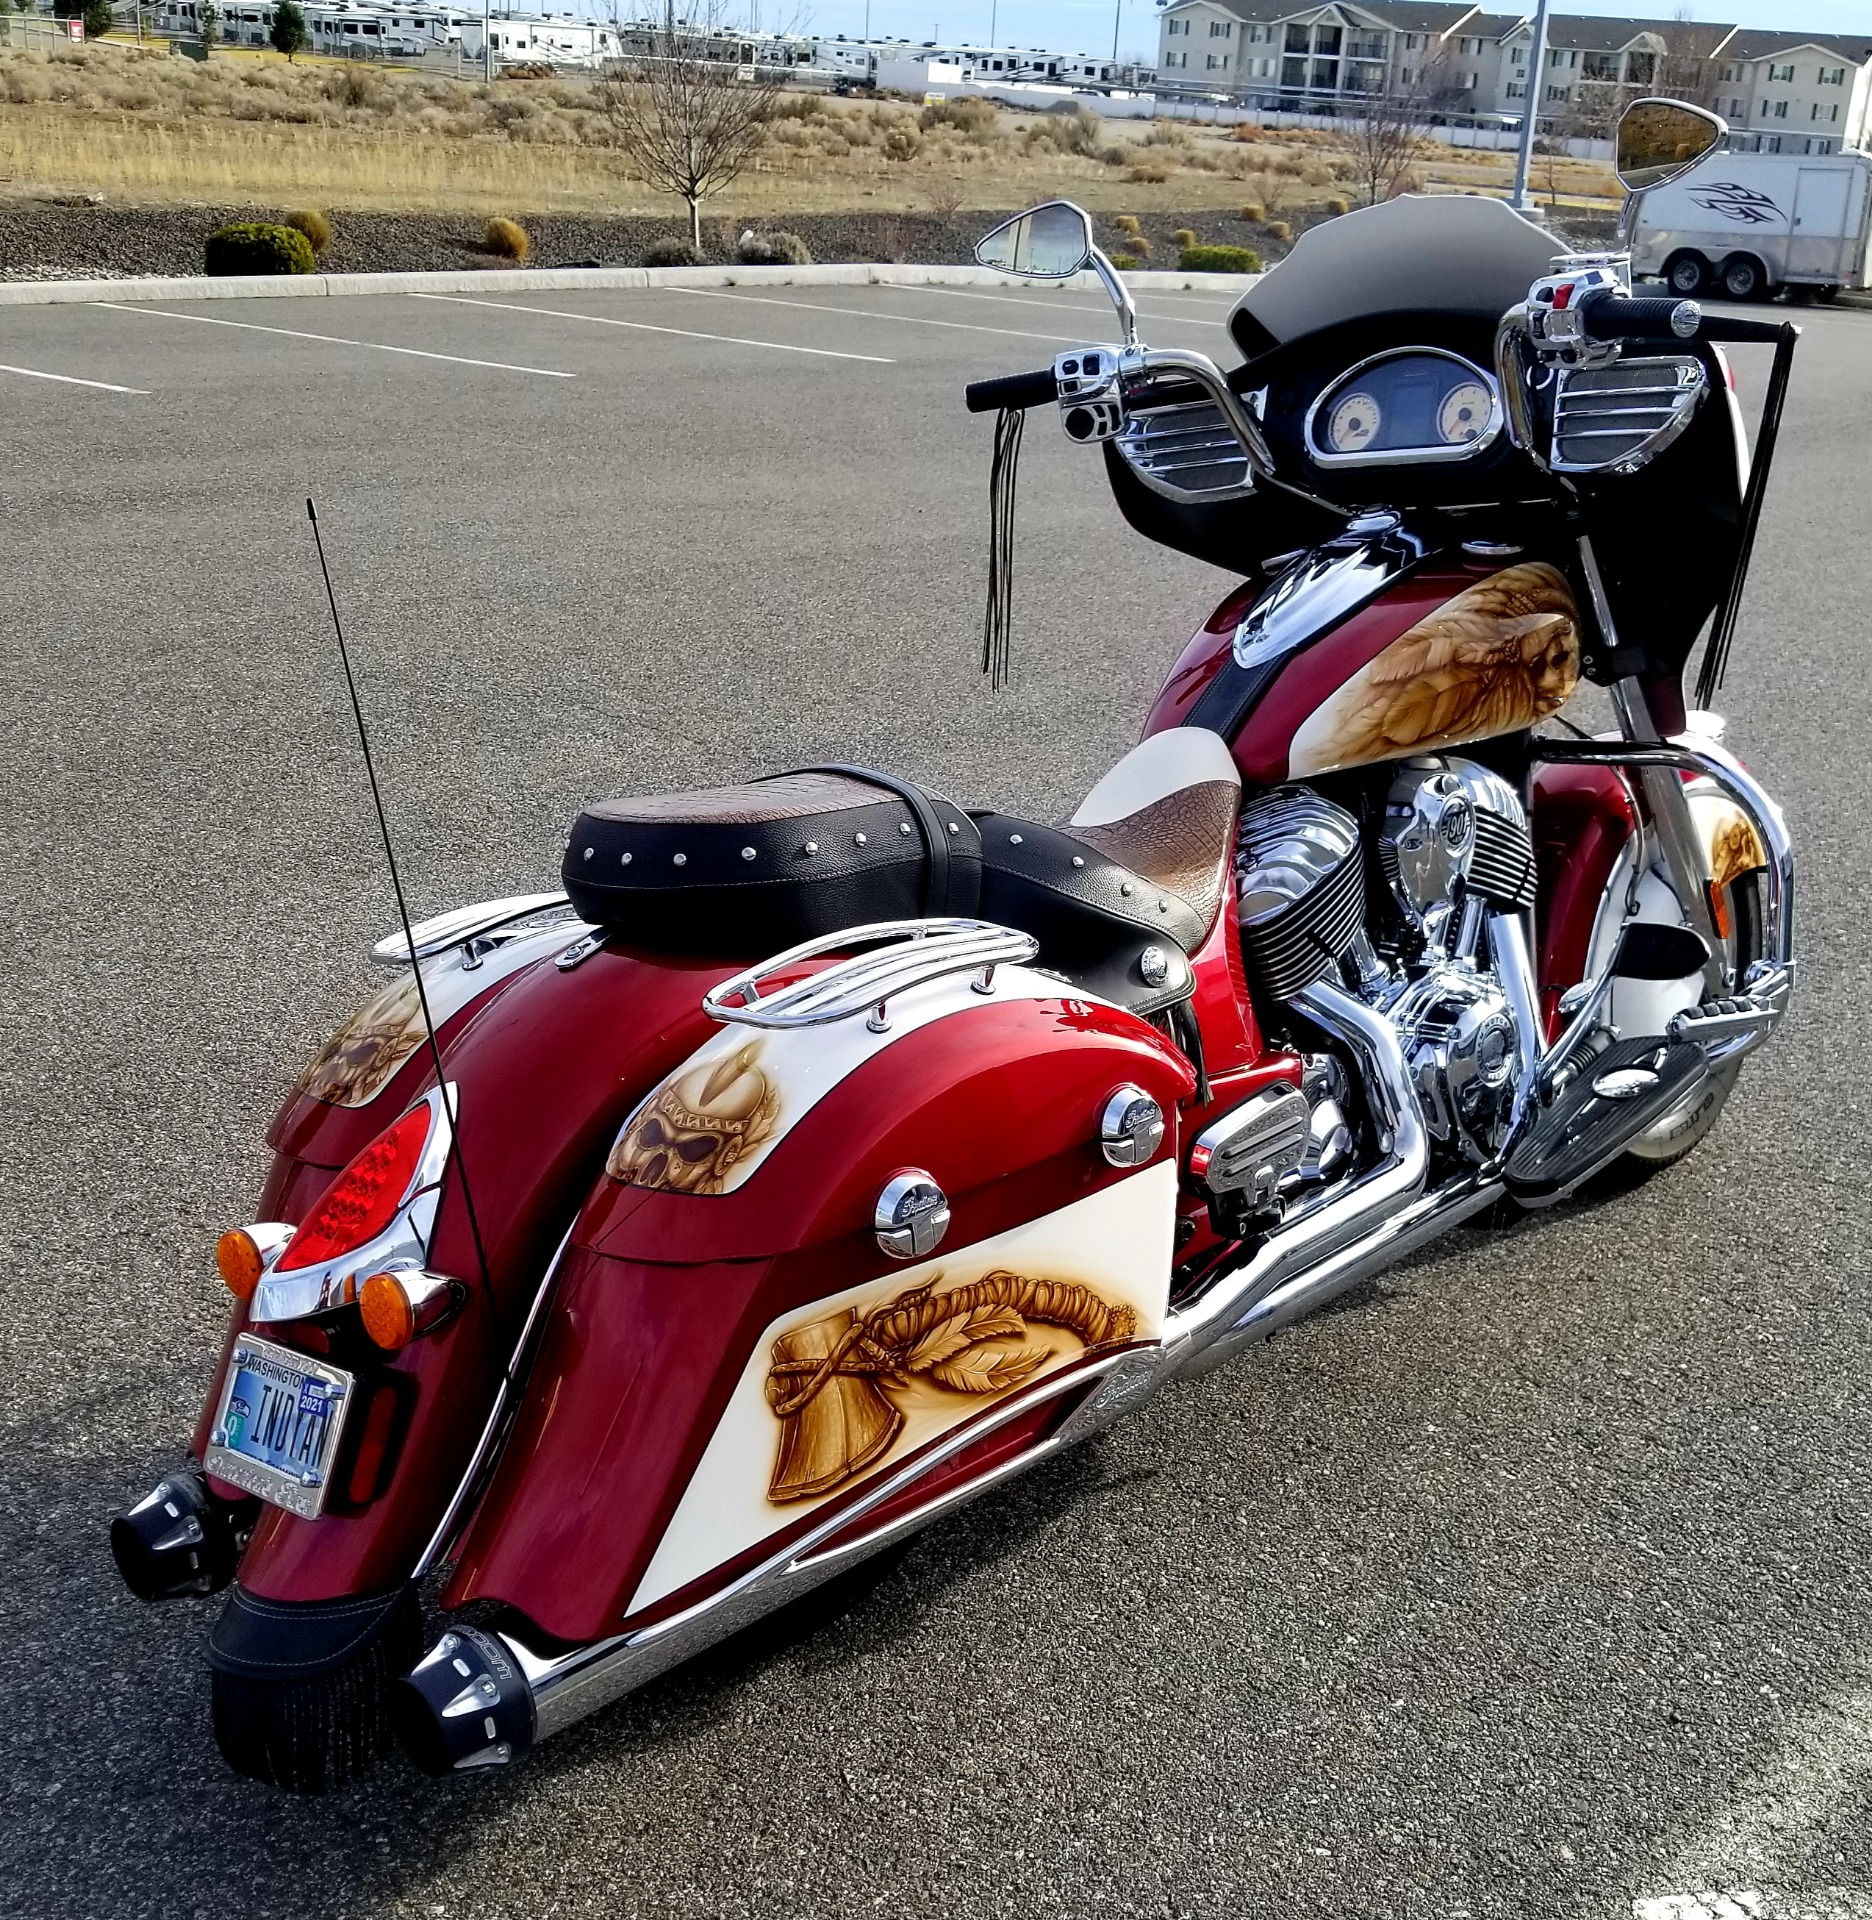 2014 Indian Chieftain™ in Pasco, Washington - Photo 4